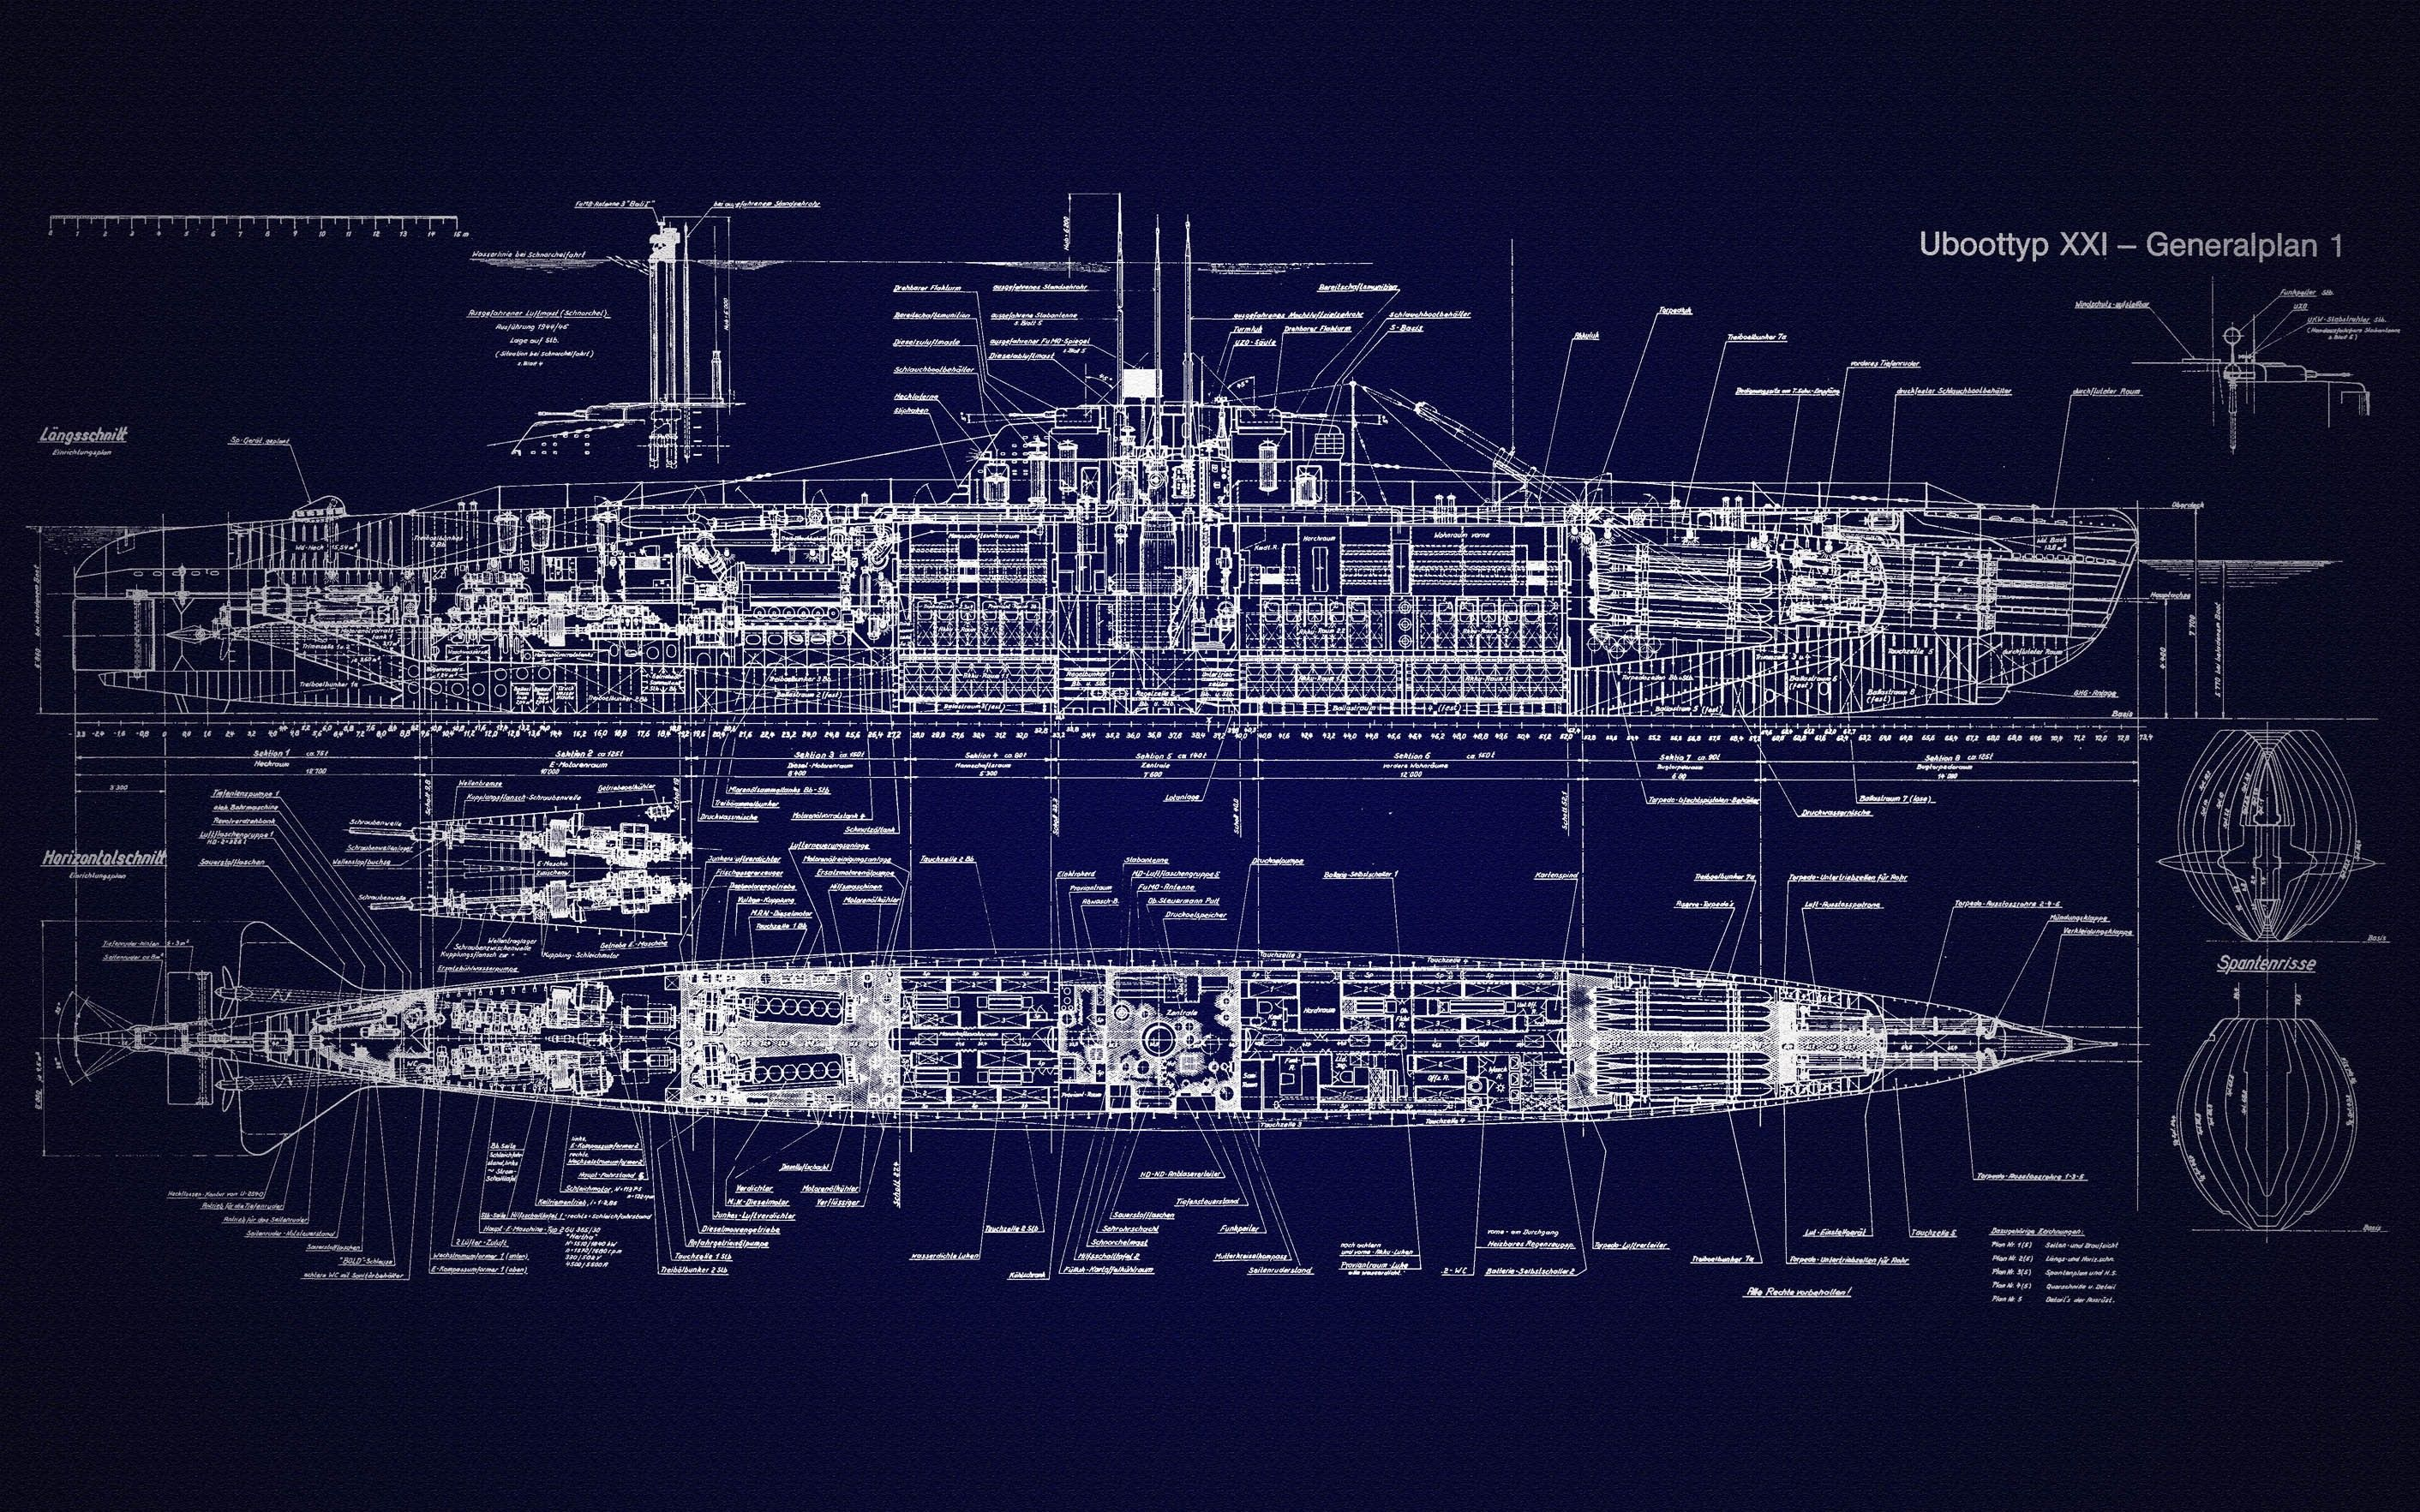 German Xxi U Boat Diagram Layout Wiring Diagrams Germany Blueprints Submarine Type Schematic Wallpaper Rh In Pinterest Com